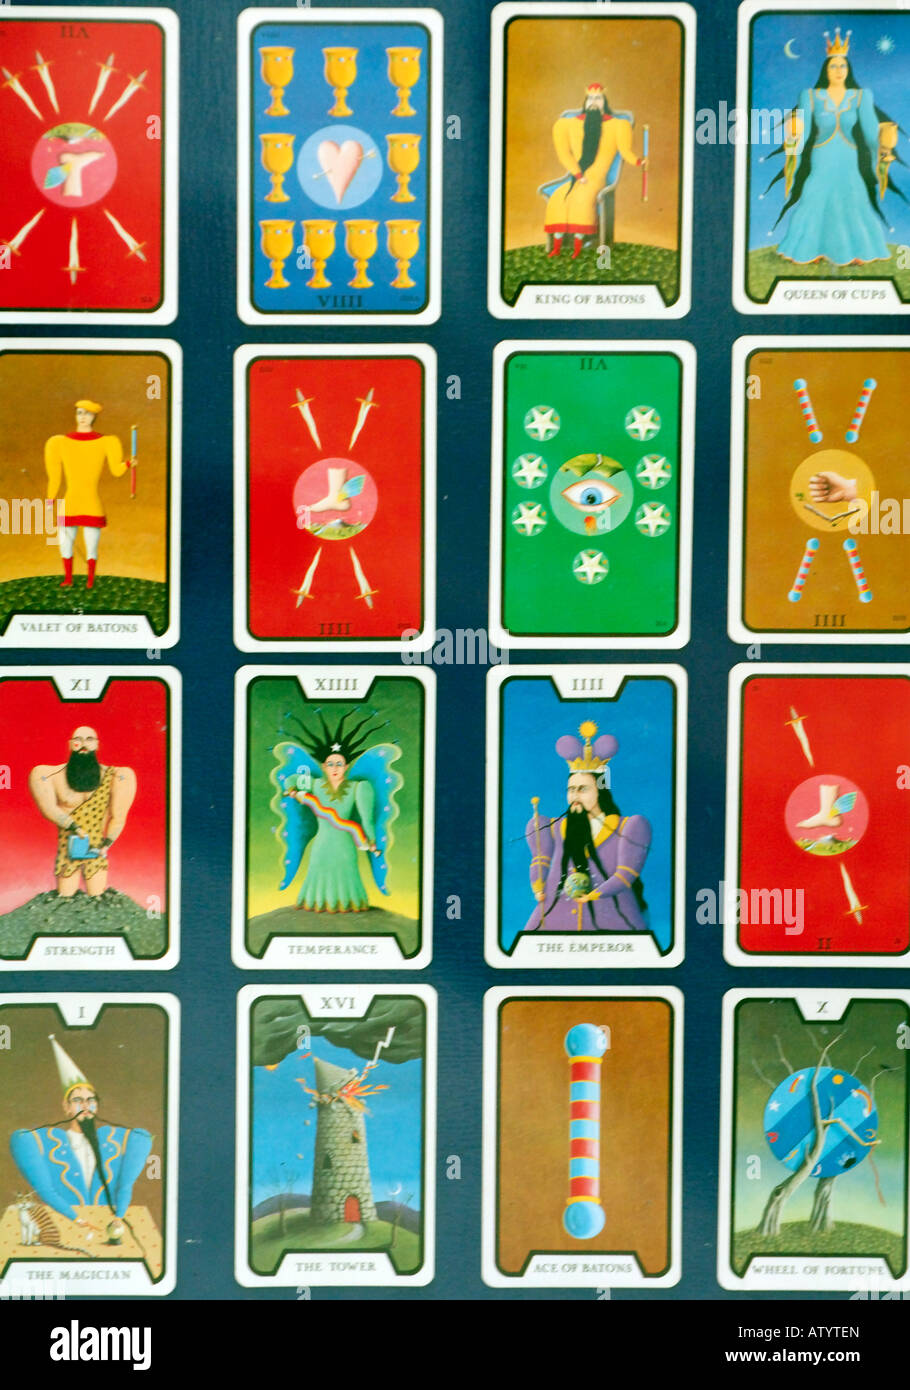 a pack set deck of colourfule tarot cards used for runes fortune telling predictiong future mystical magicians fete - Stock Image